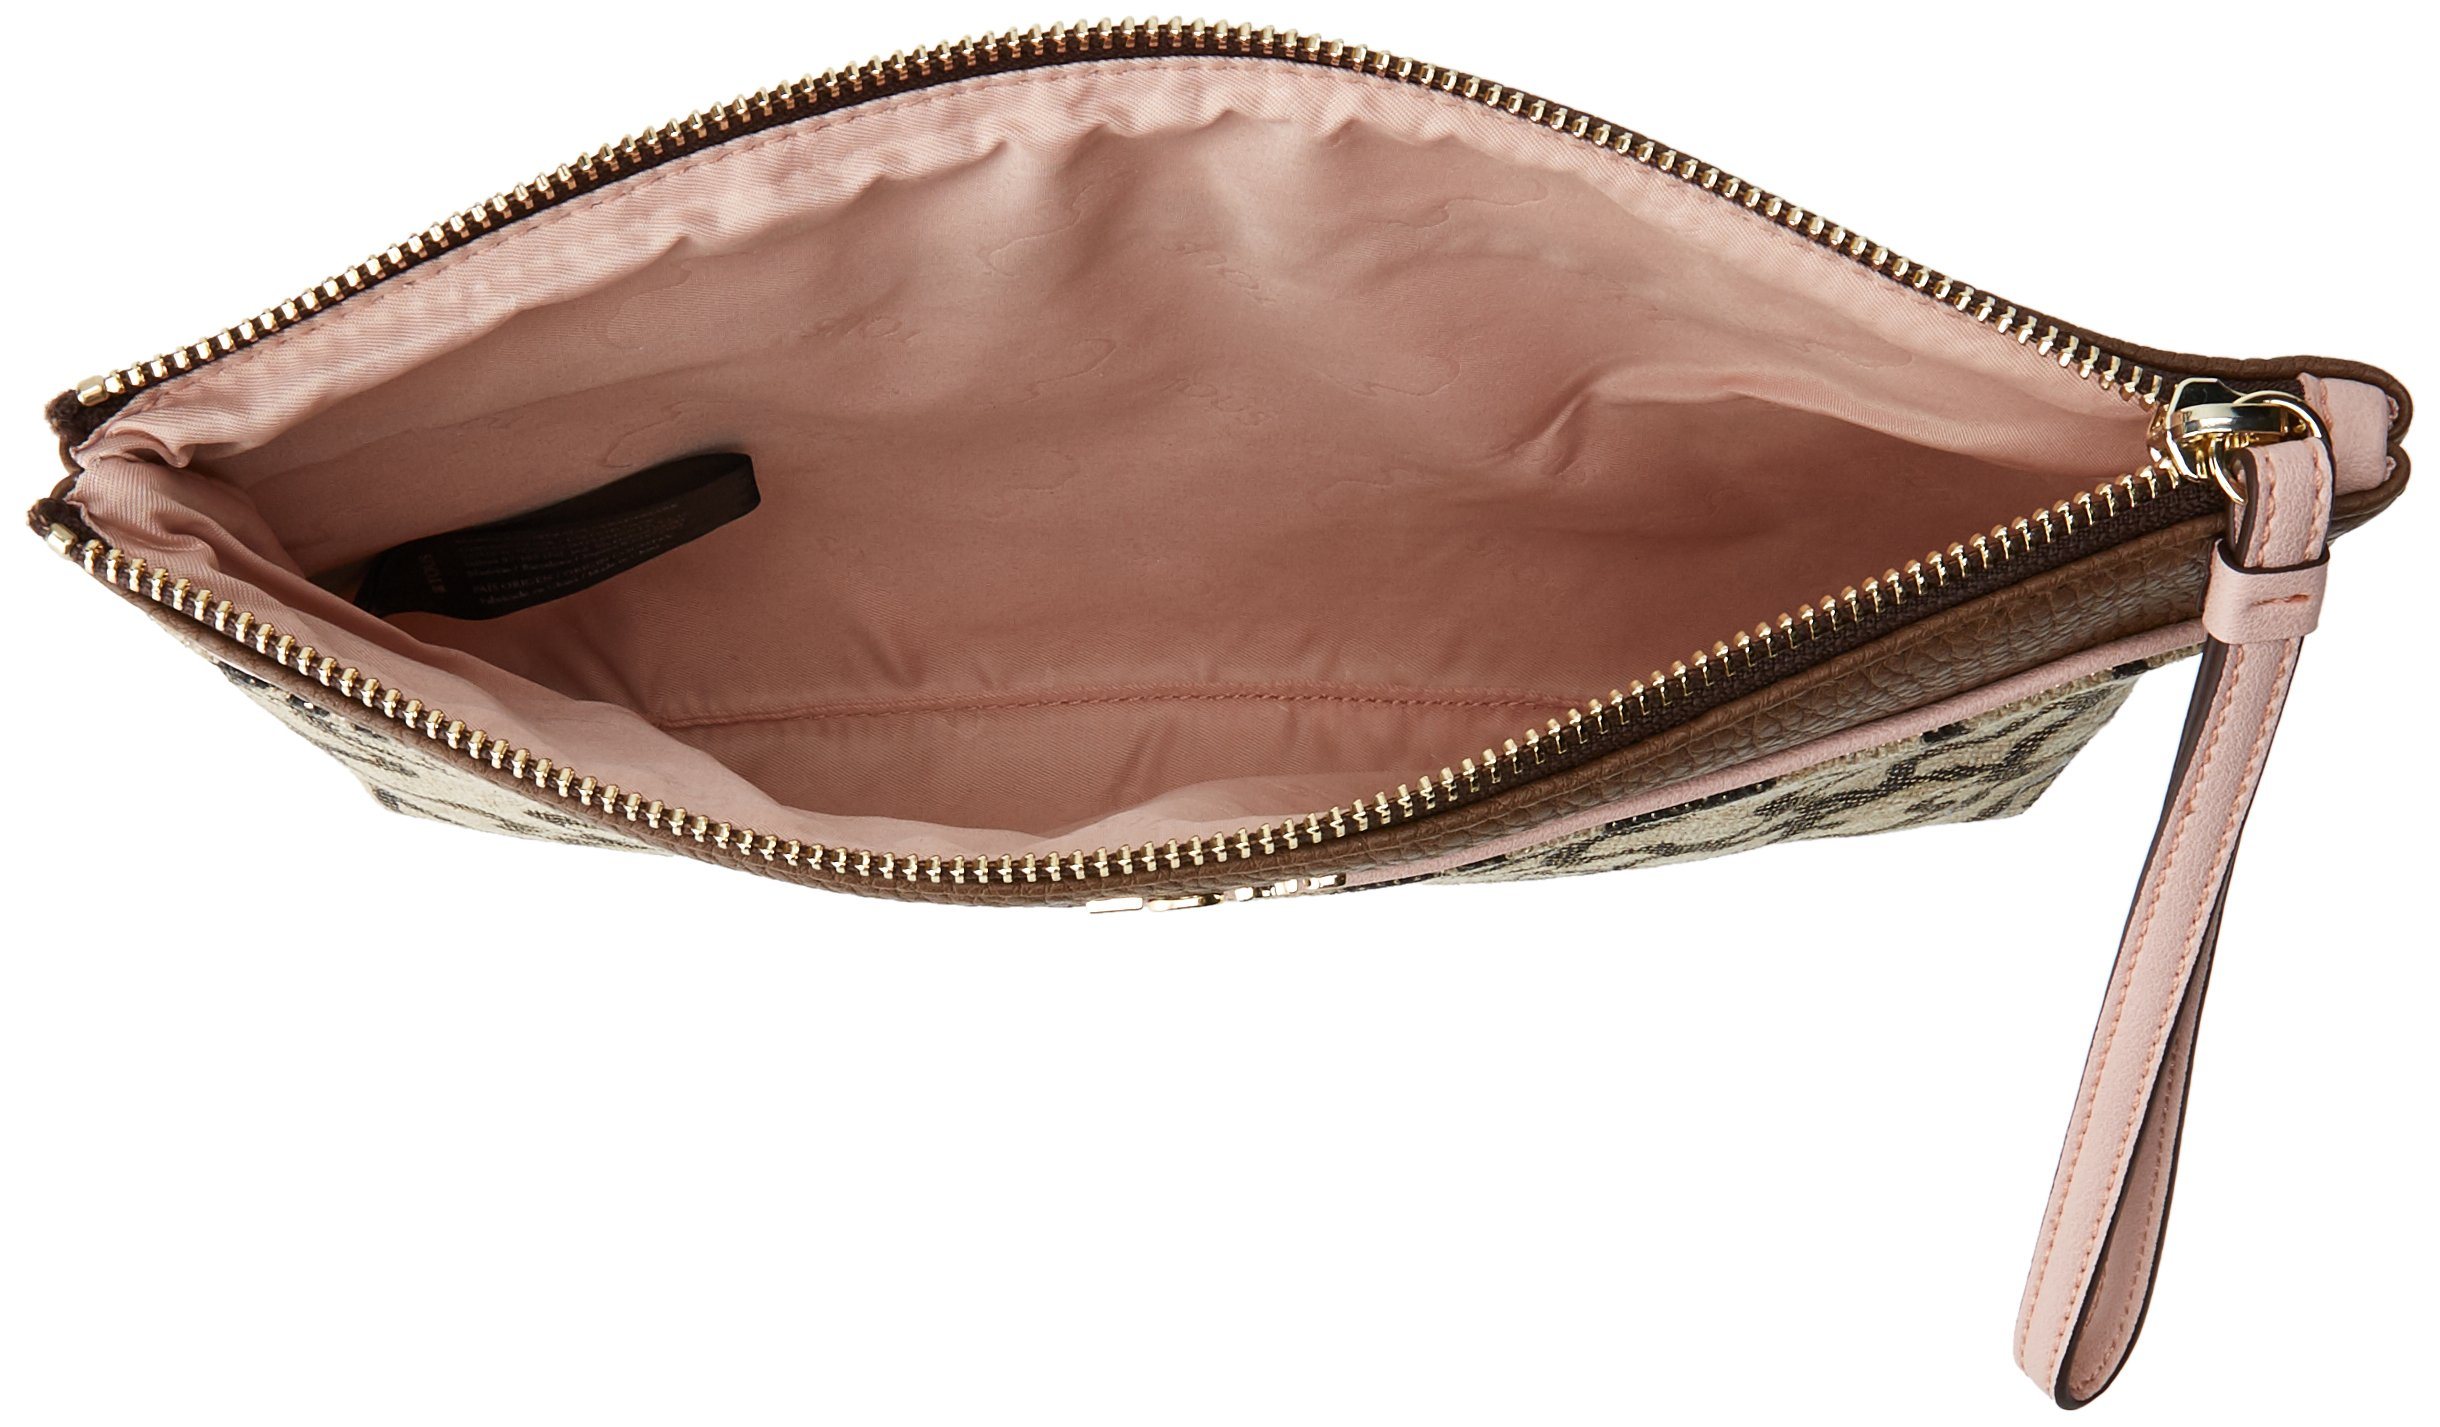 81HVURbSs5L - Tous City Elice New, Bolso para Mujer